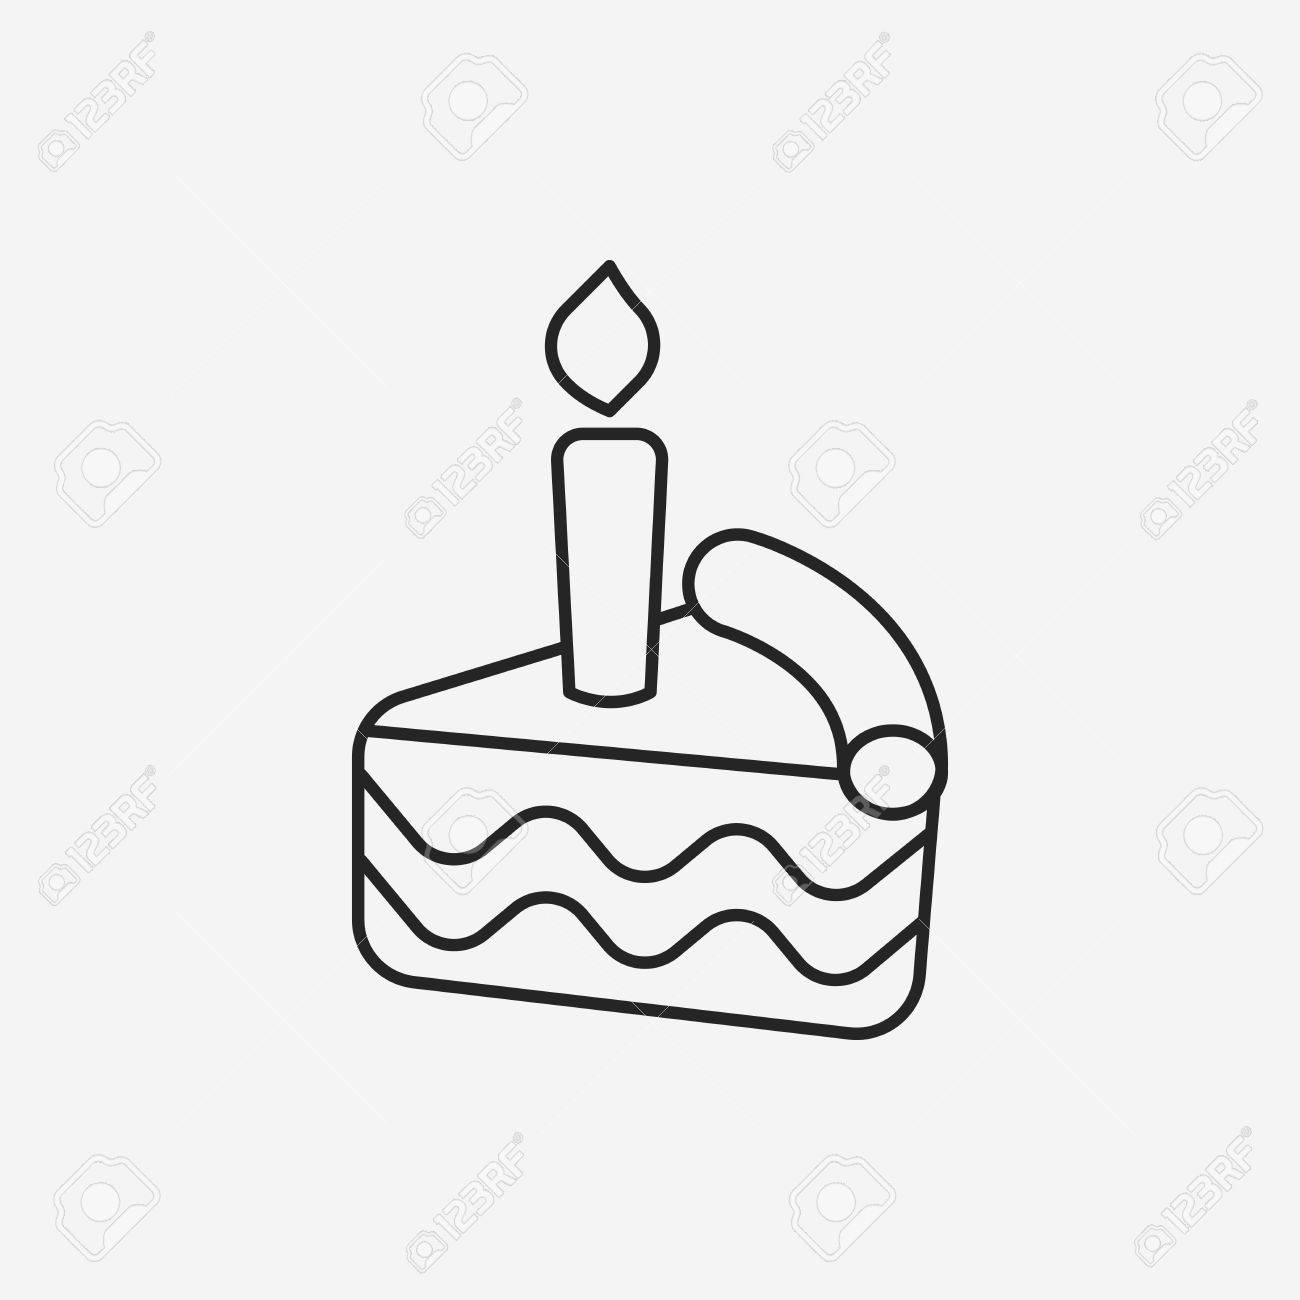 1300x1300 Birthday Cake Line Icon Royalty Free Cliparts, Vectors, And Stock